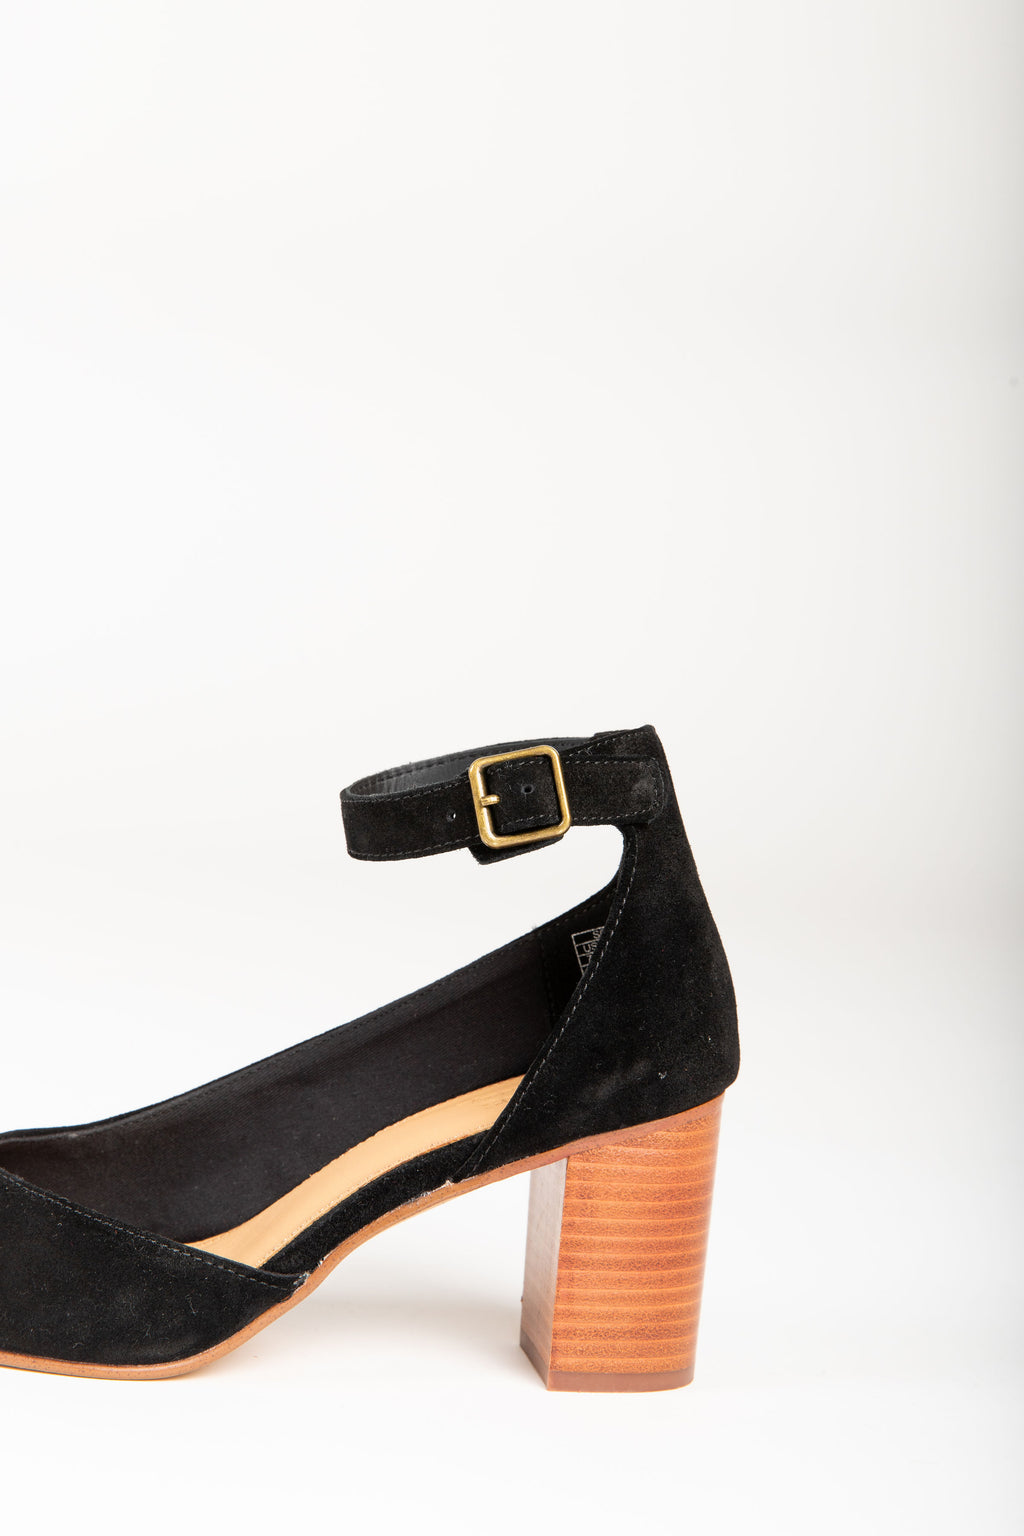 Soludos: Gemma Heel in Black, studio shoot; side view